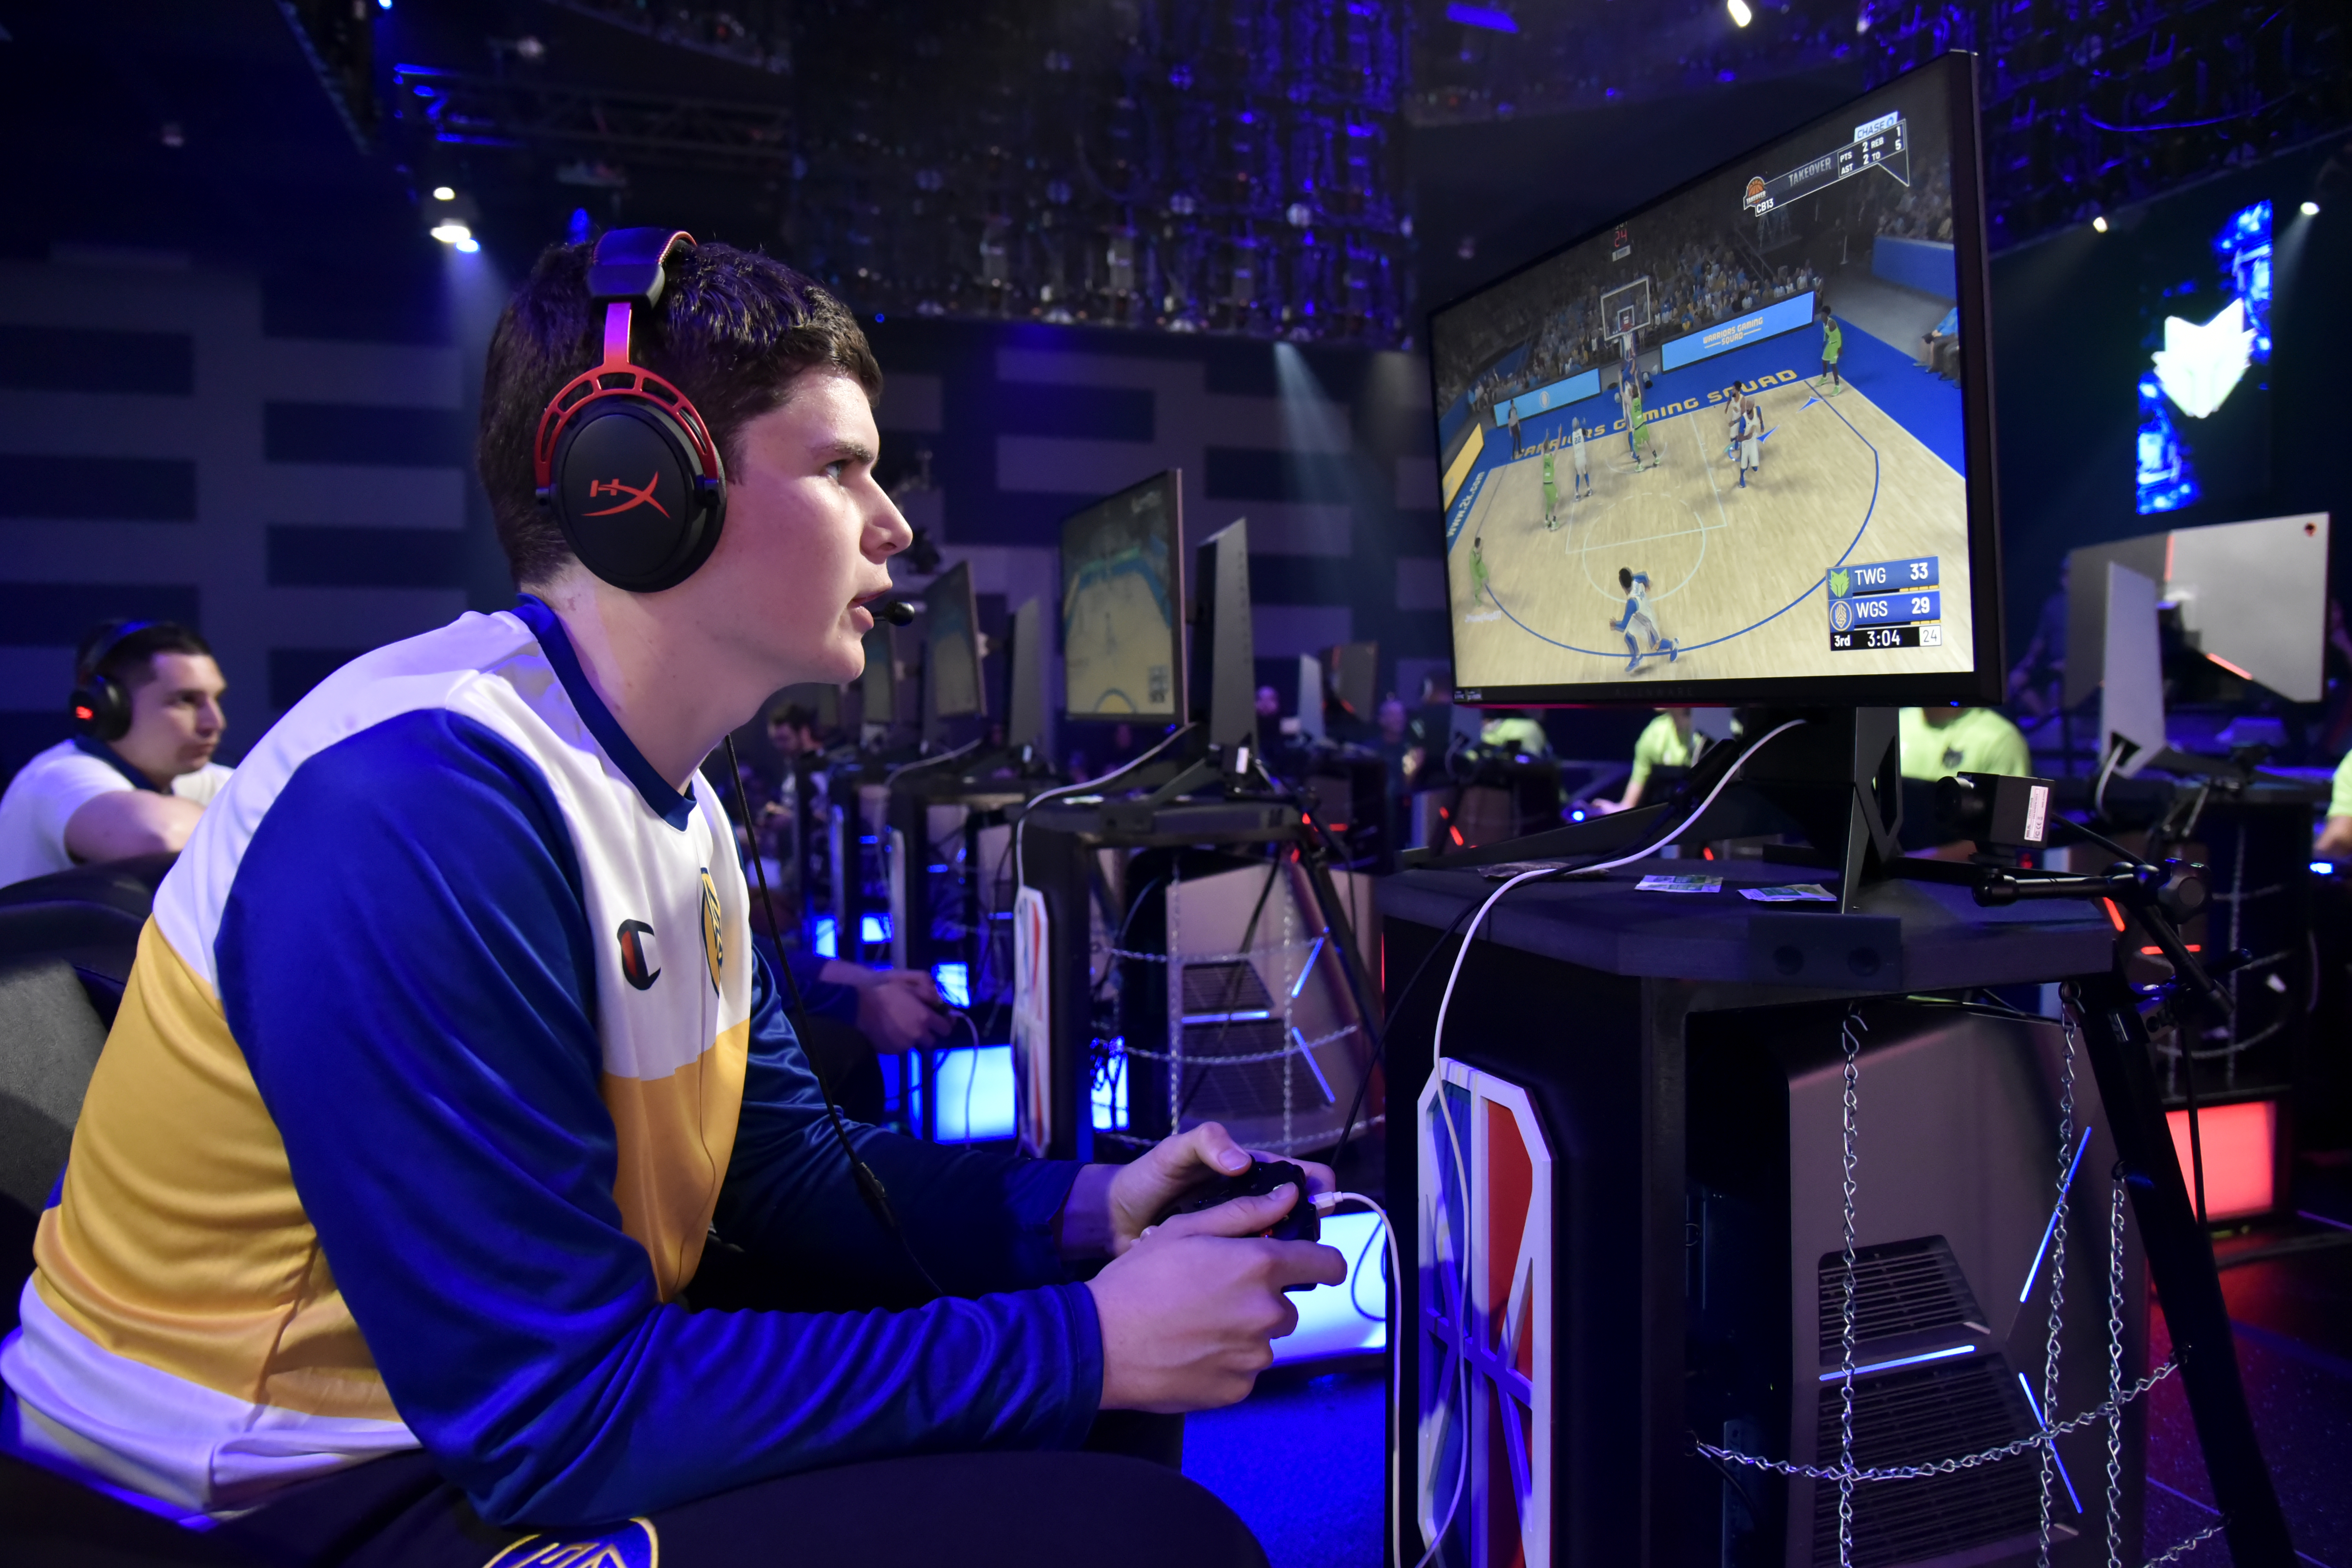 2019 NBA 2K League The Ticket Tournament - T-Wolves Gaming v Warriors Gaming Squad